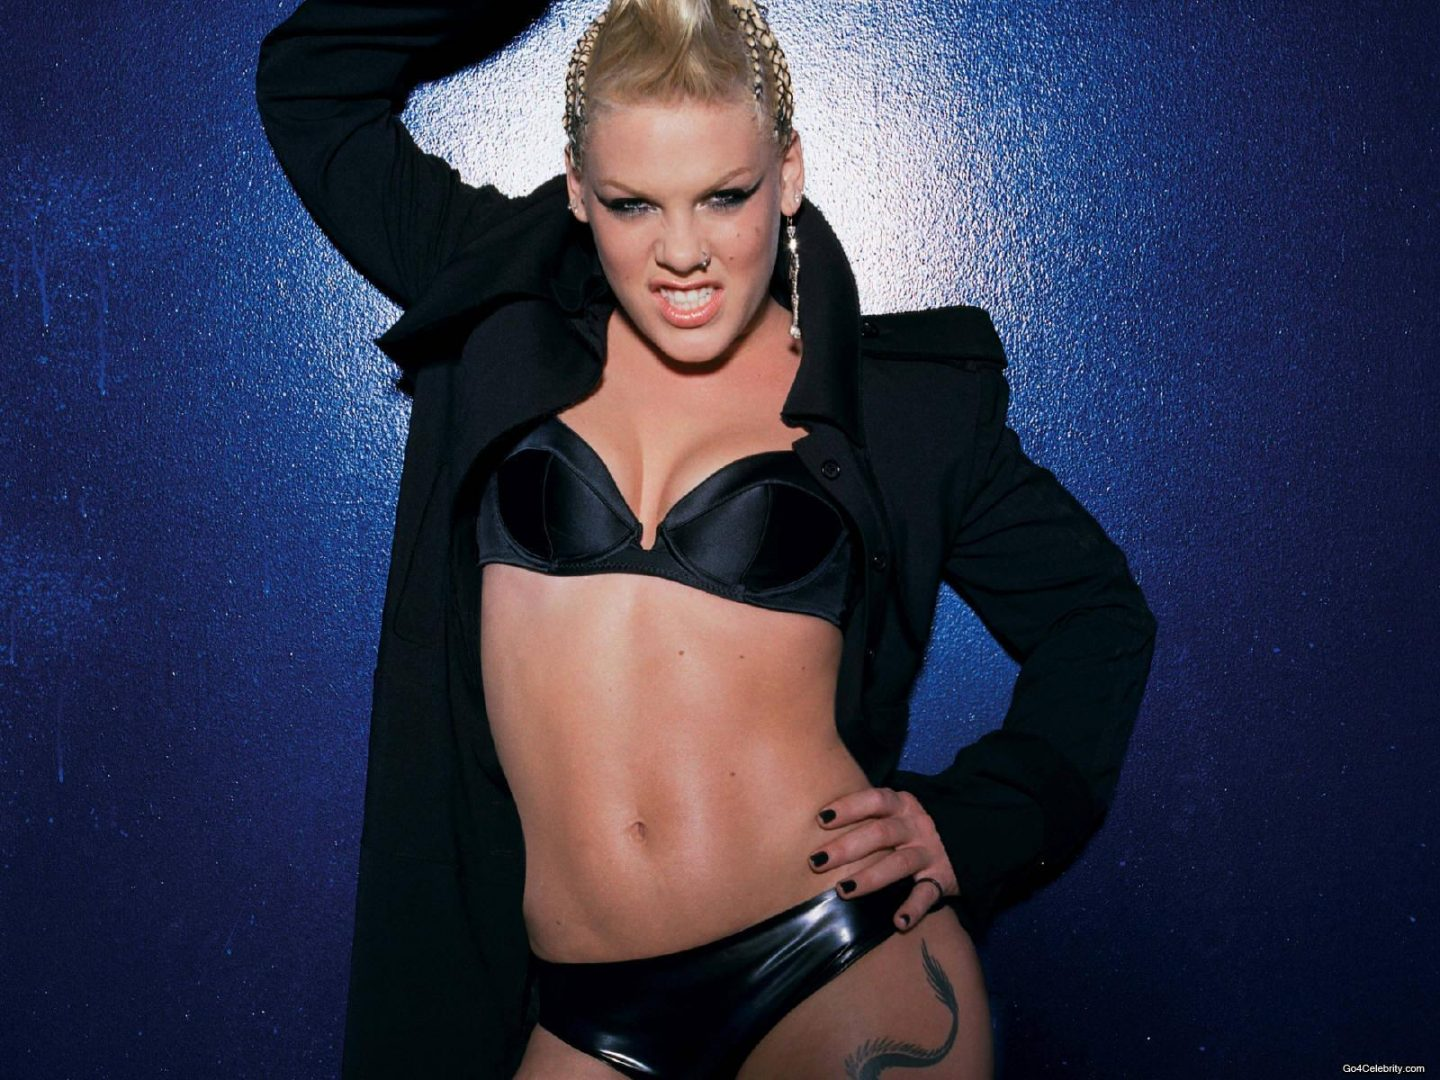 Hot Alecia Beth Moore nudes (51 foto and video), Topless, Hot, Boobs, swimsuit 2015